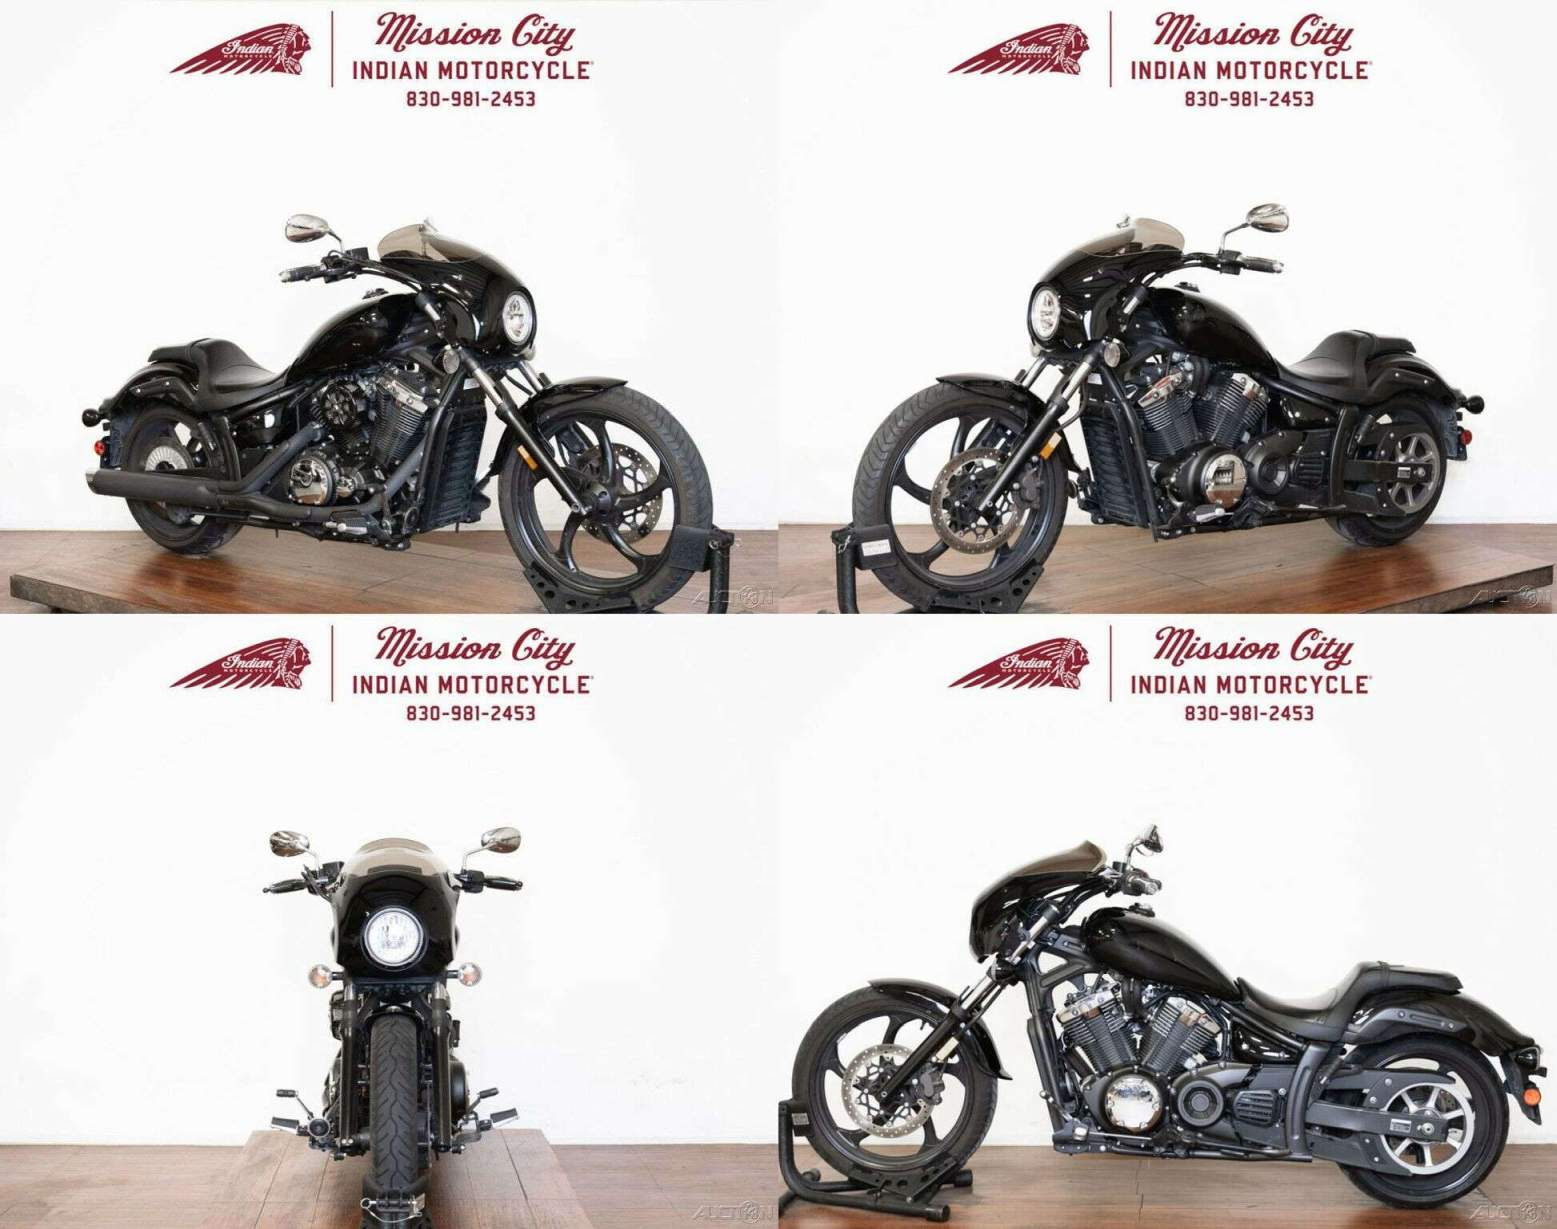 2013 Yamaha Stryker Raven used for sale near me